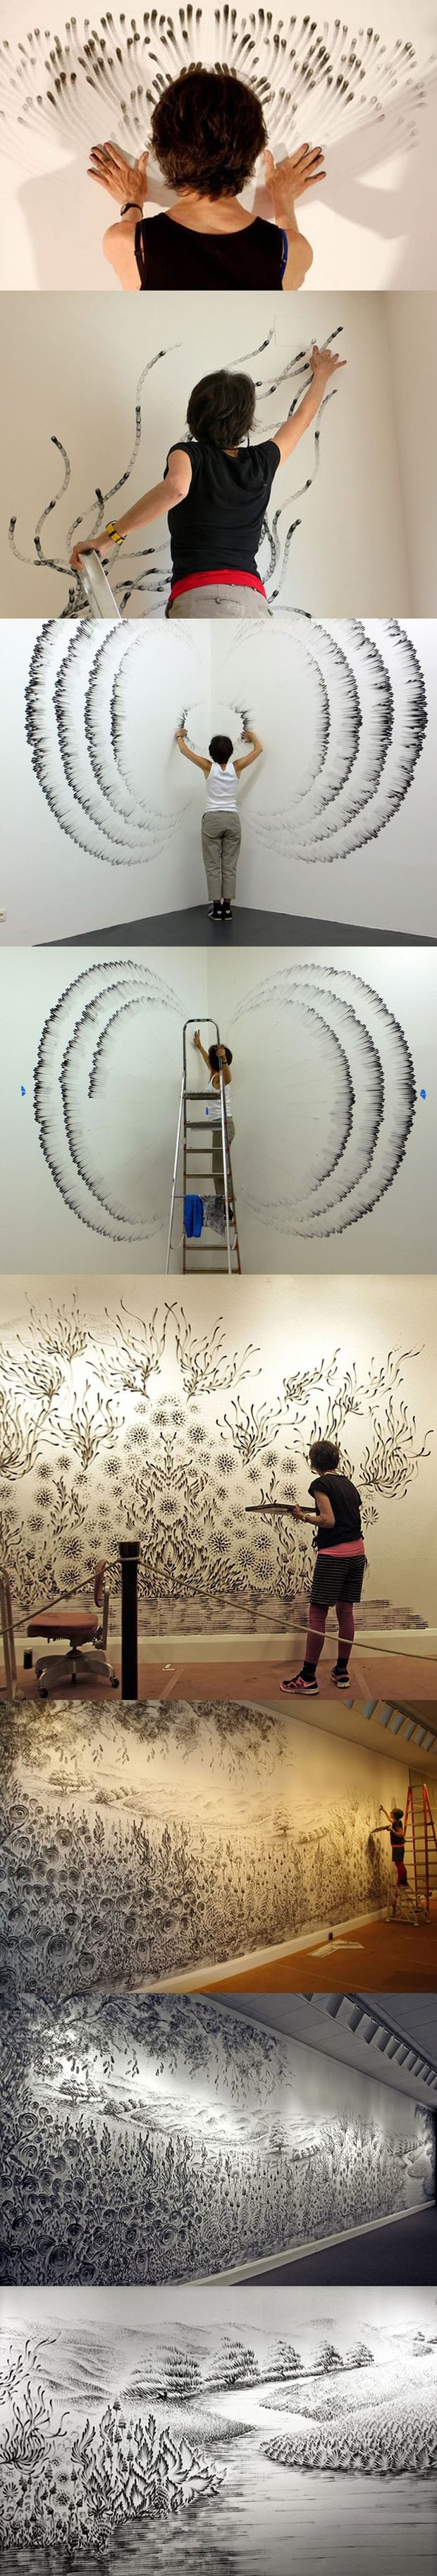 Wish i had these skills!  Beautiful wall painting made by using just fingers